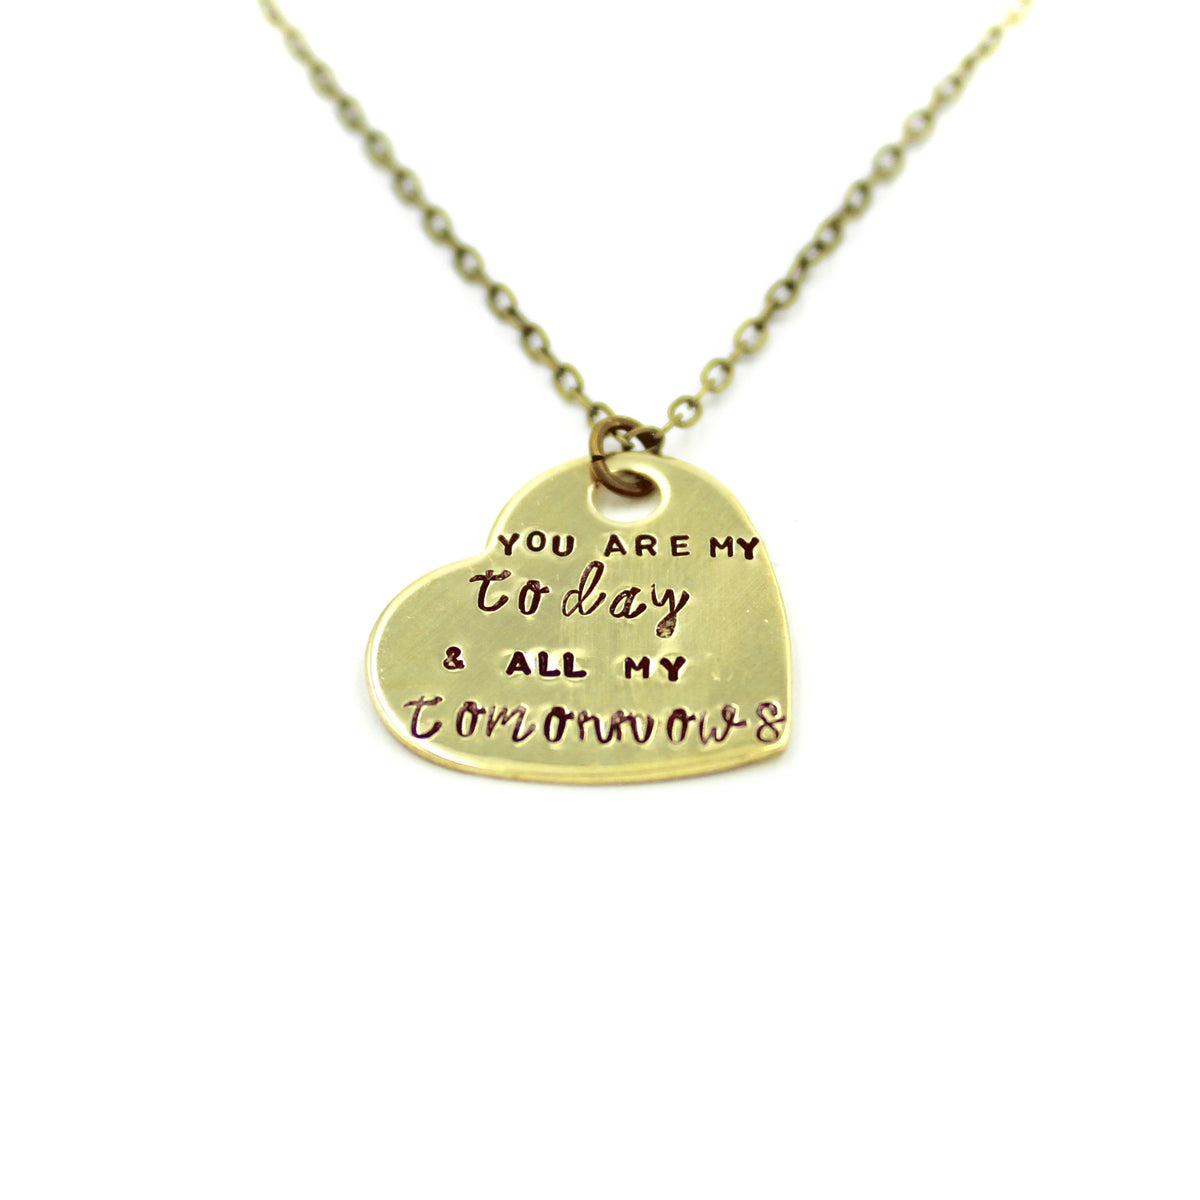 You Are My Today & All My Tomorrows Necklace